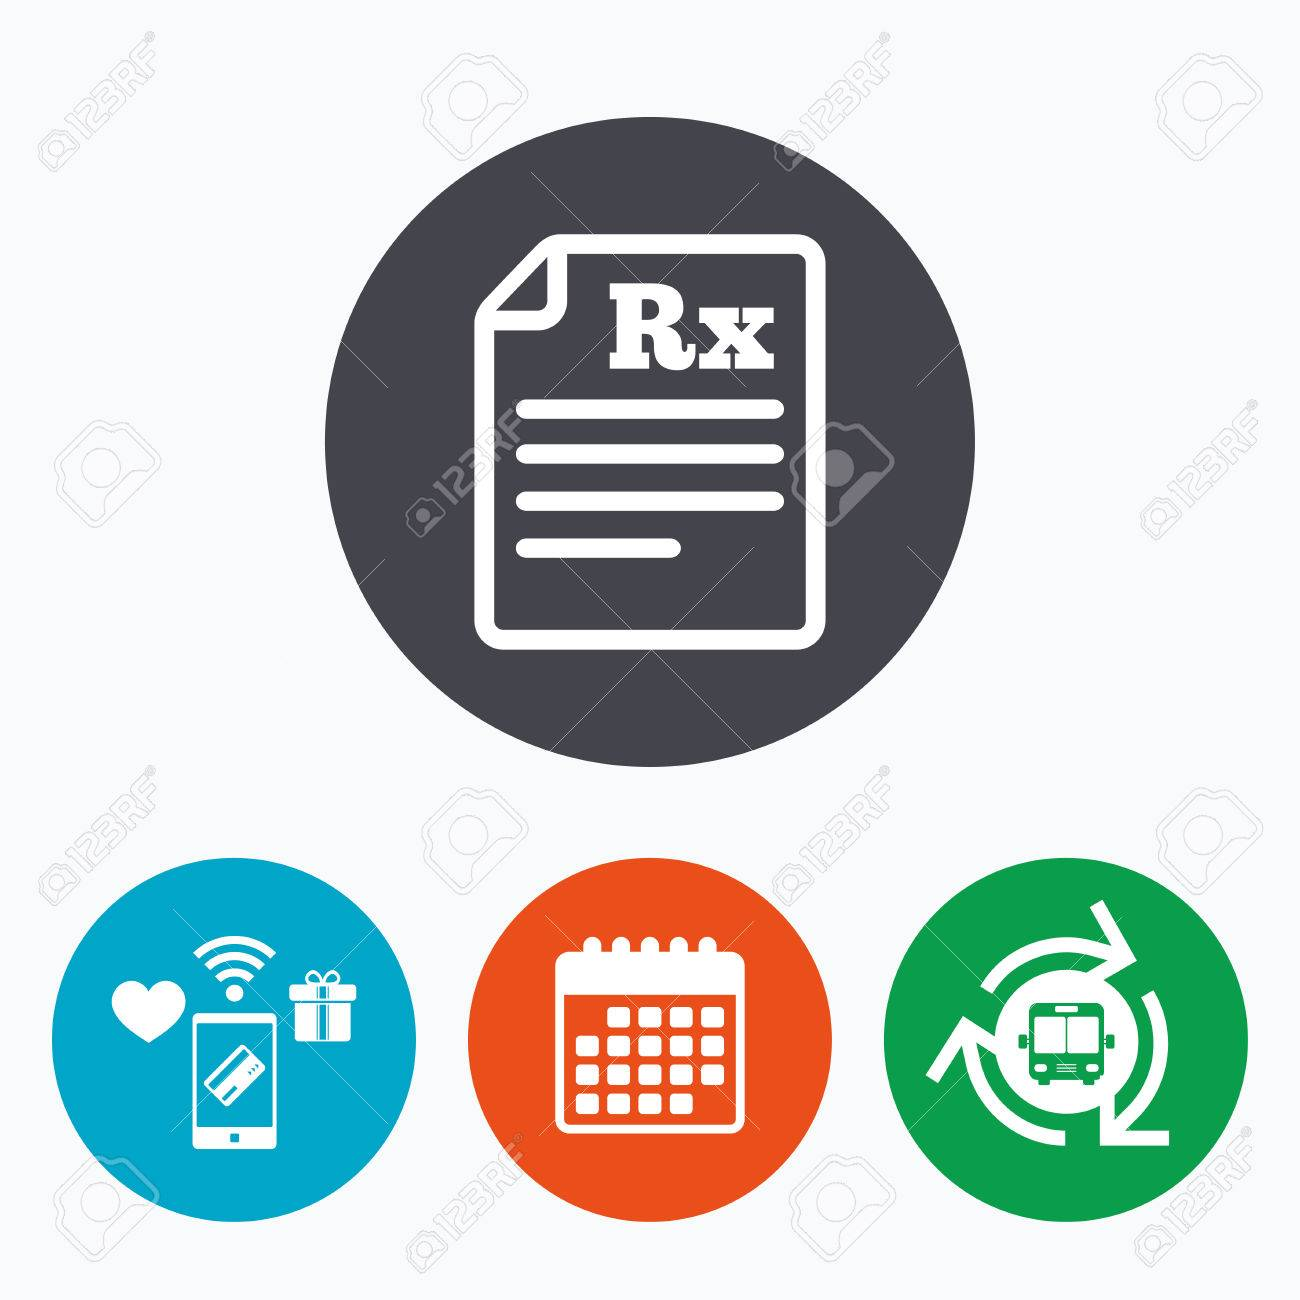 Medical prescription rx sign icon pharmacy or medicine symbol medical prescription rx sign icon pharmacy or medicine symbol mobile payments calendar and buycottarizona